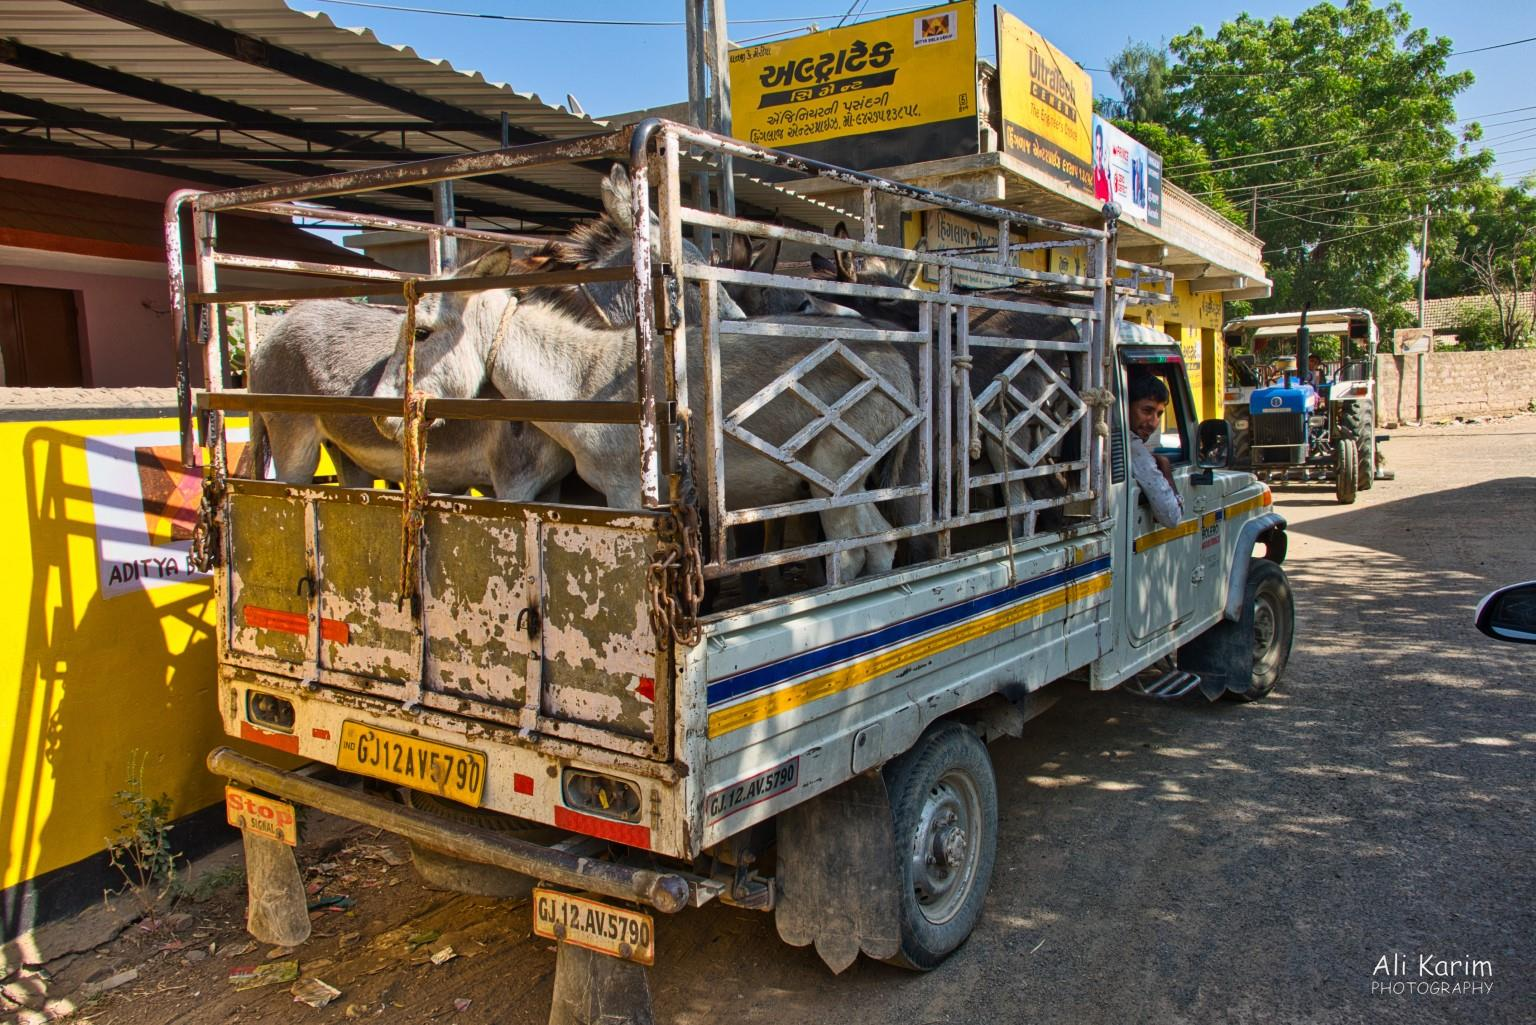 Bhuj, Kutch, Gujarat Modes of transportation; donkeys and trucks